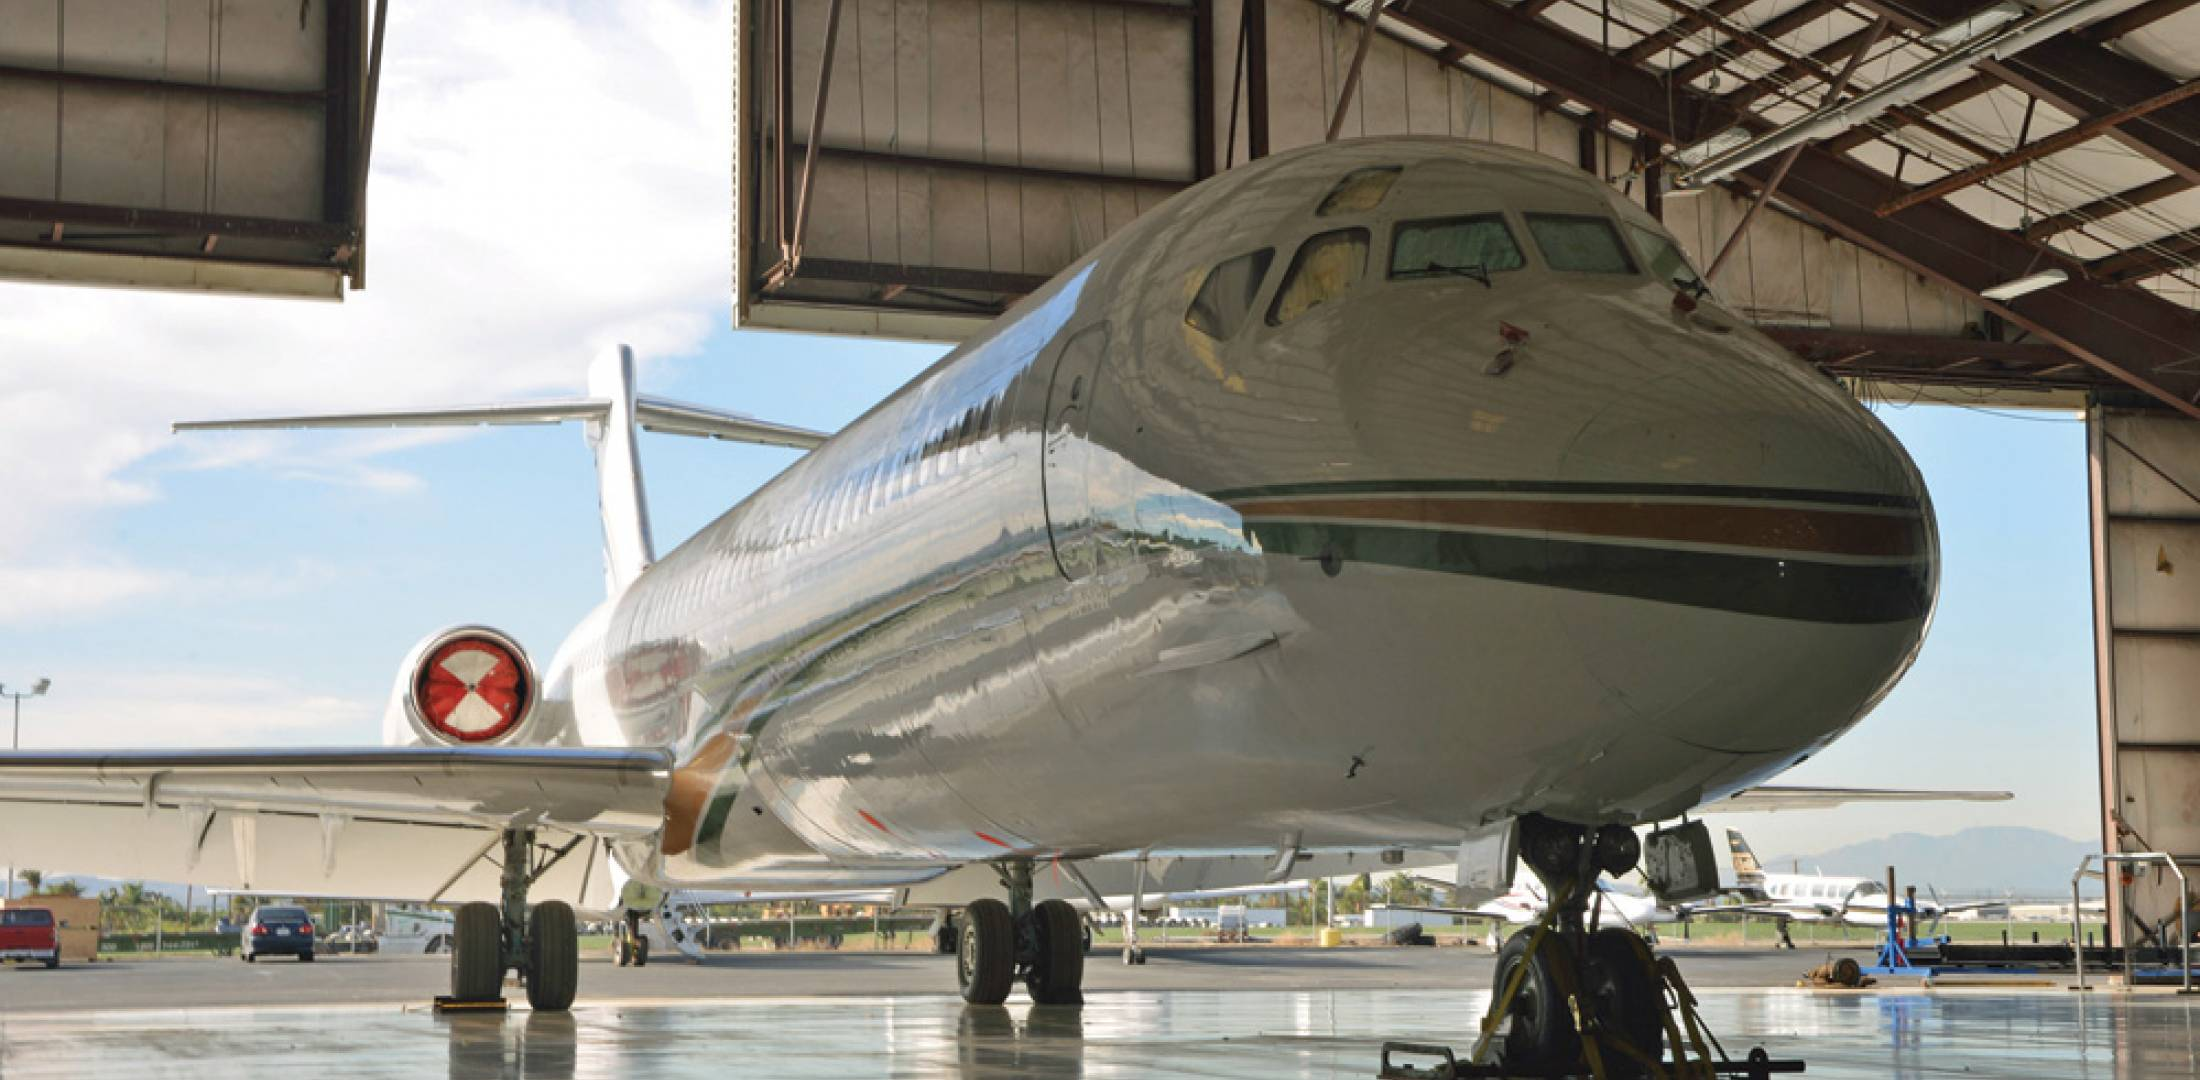 Threshold seeks to be a one-stop shop for its maintenance customers, so it offers interiors and completions services that can be performed during the aircraft's maintenance downtime.